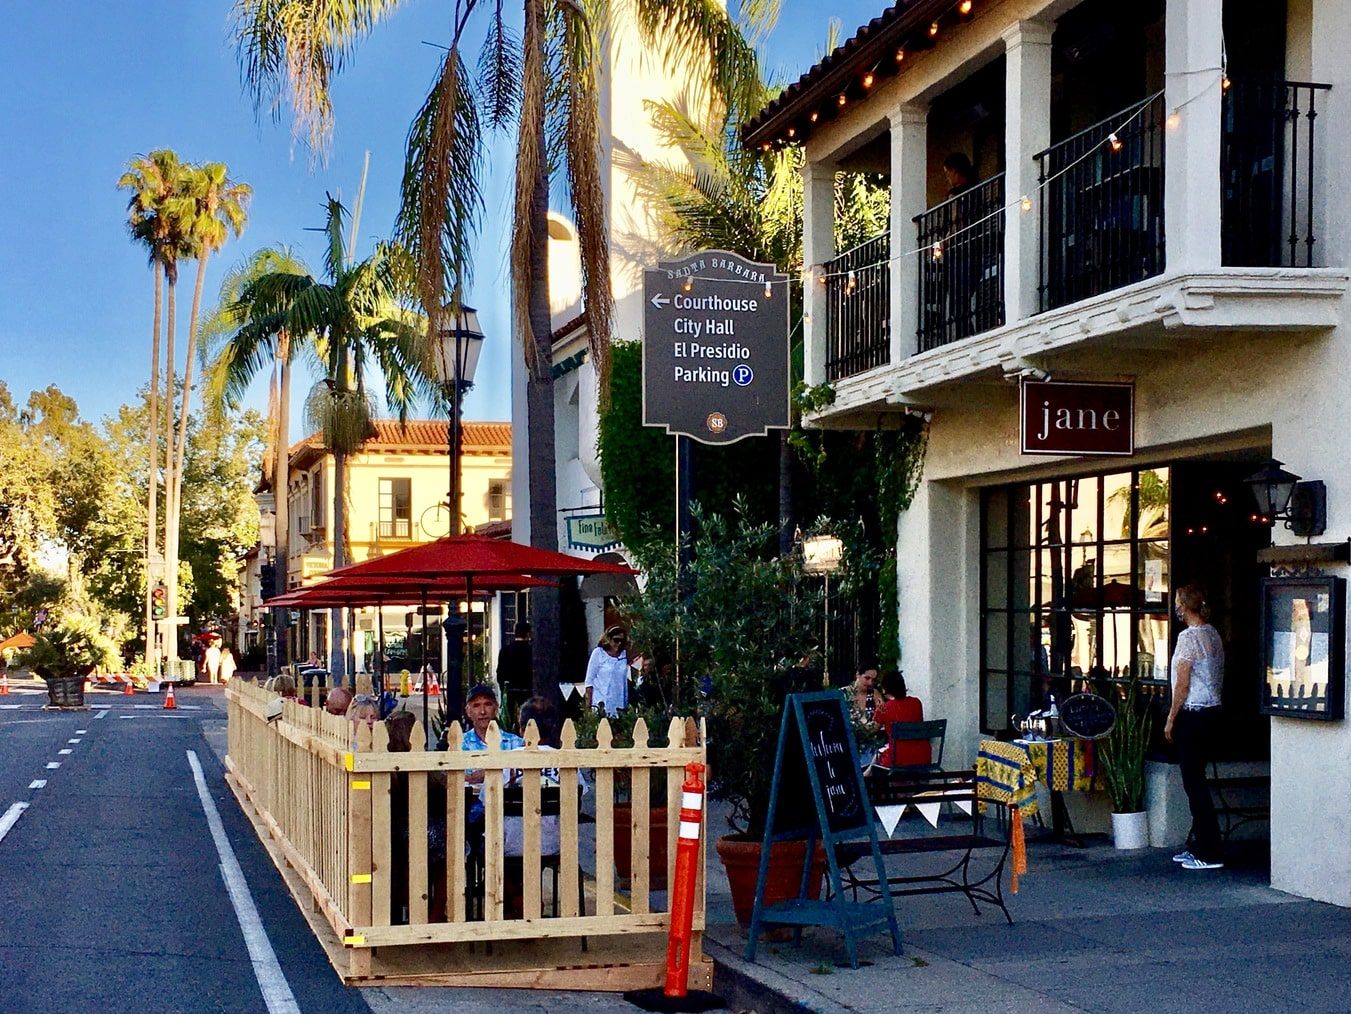 A wooden picket fence extends into State Street so diners sitting under red umbrellas can enjoy the expanded outdoor dining during COVID.